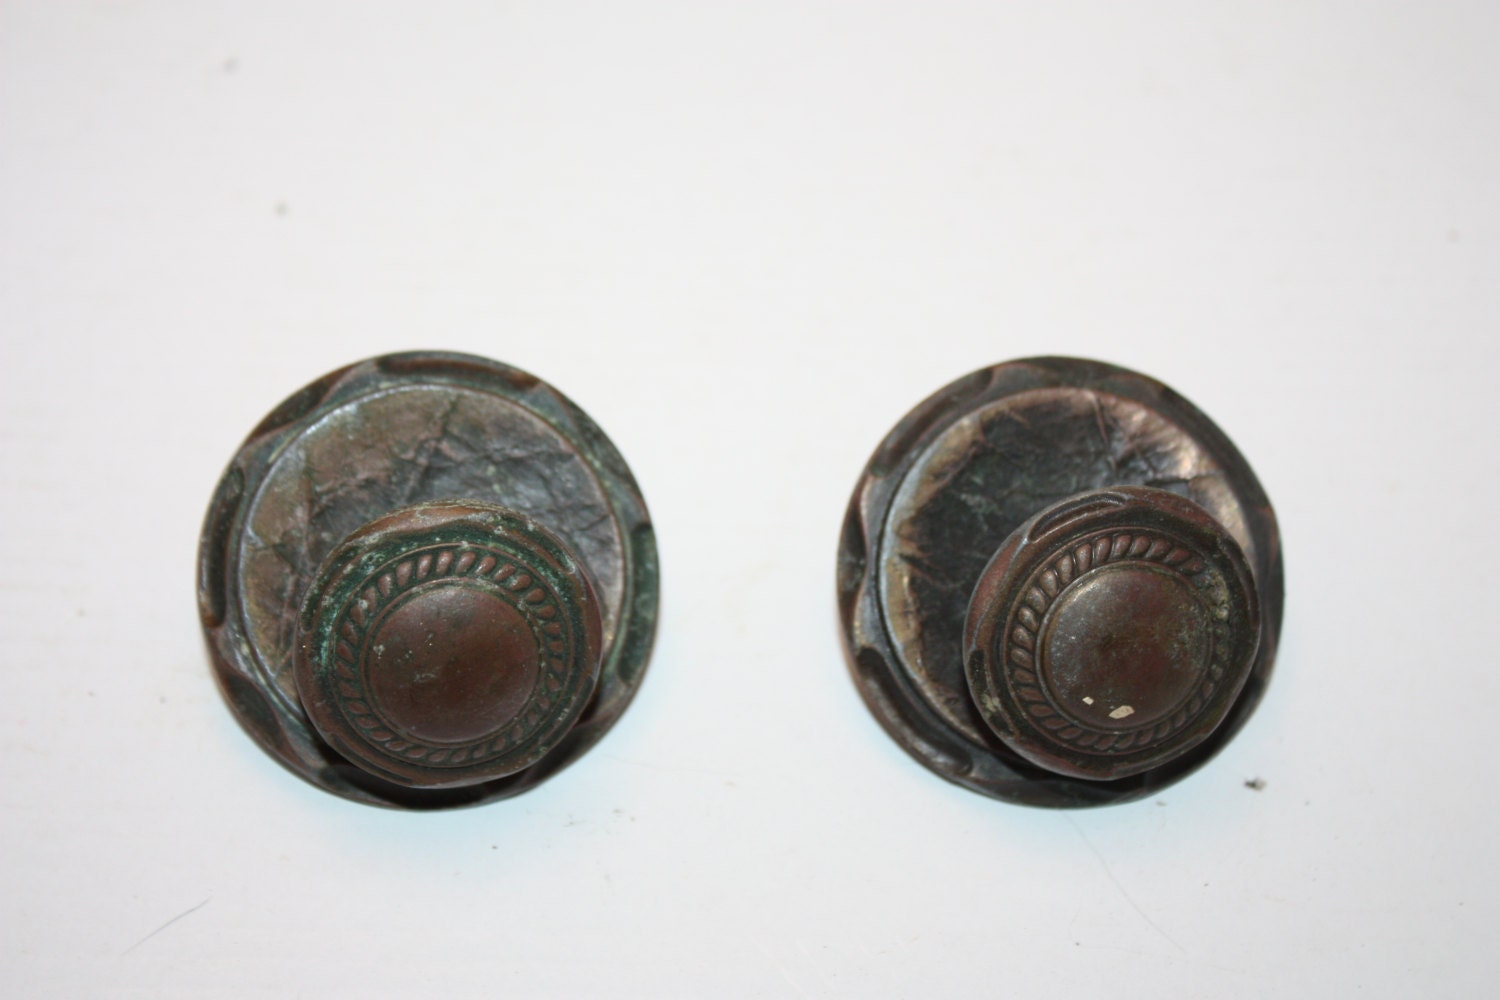 Decorative Knobs For Kitchen Cabinets Decorative Knobs